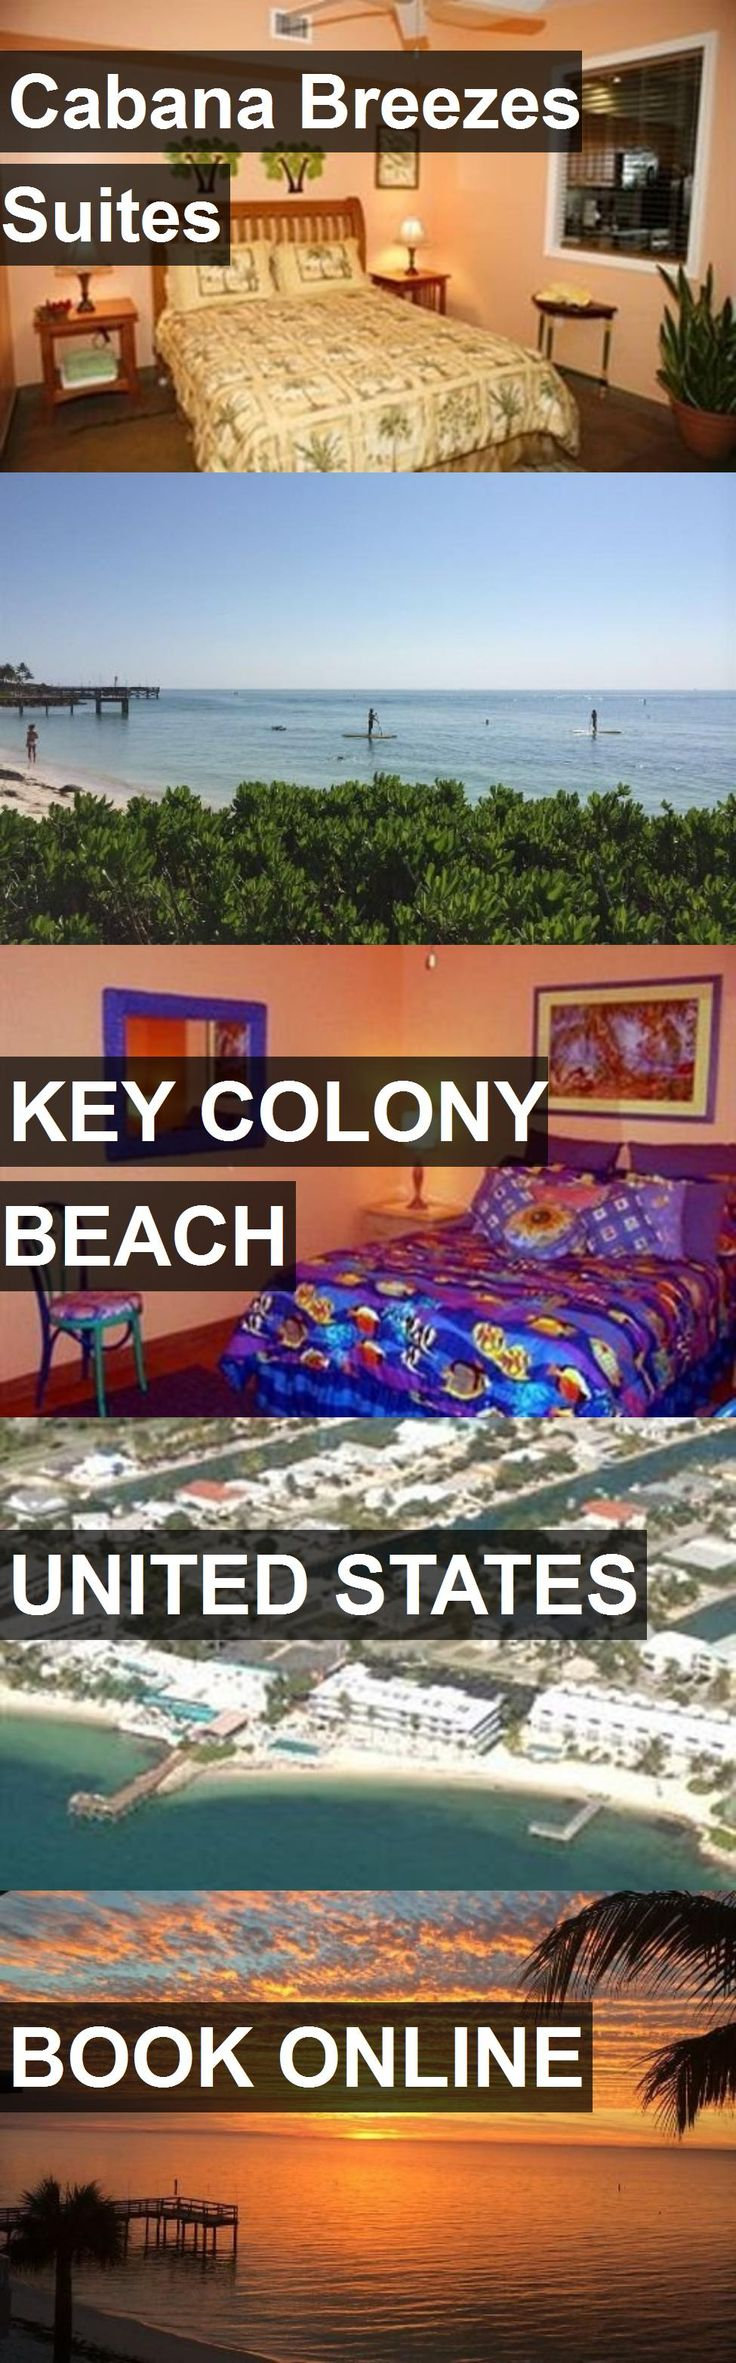 Hotel Cabana Breezes Suites in Key Colony Beach, United States. For more information, photos, reviews and best prices please follow the link. #UnitedStates #KeyColonyBeach #travel #vacation #hotel